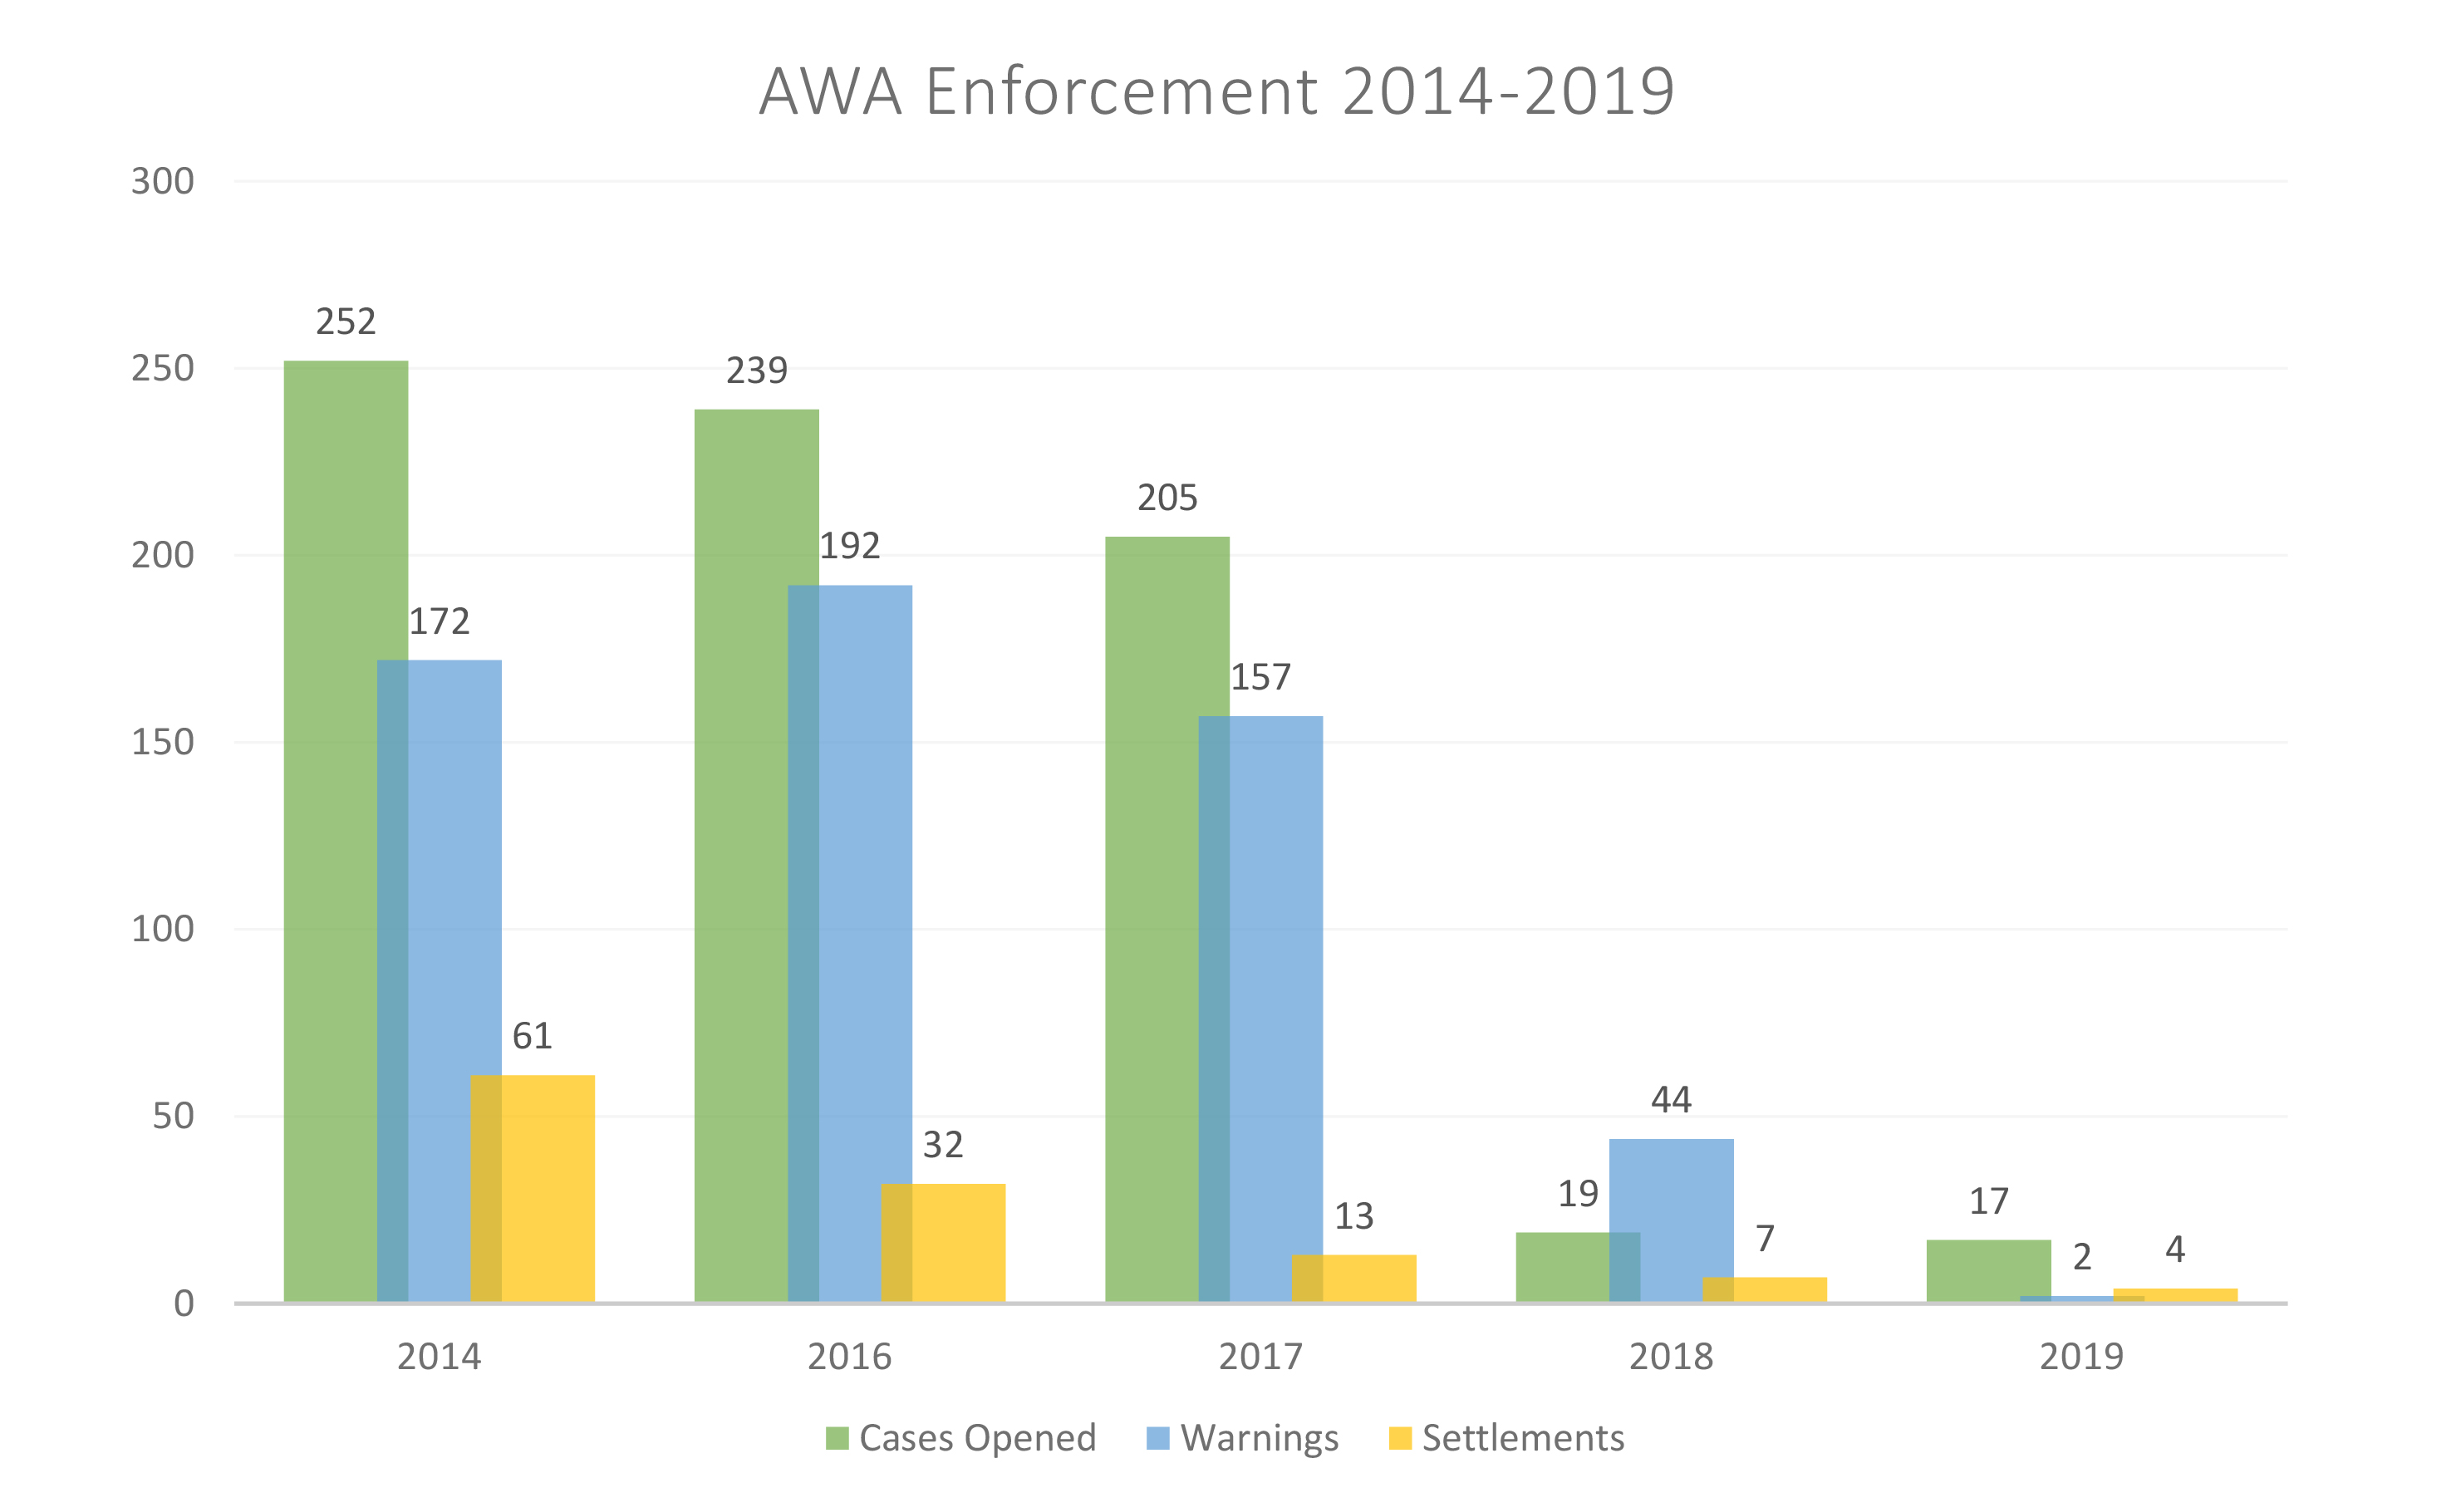 AWA Enforcement Chart